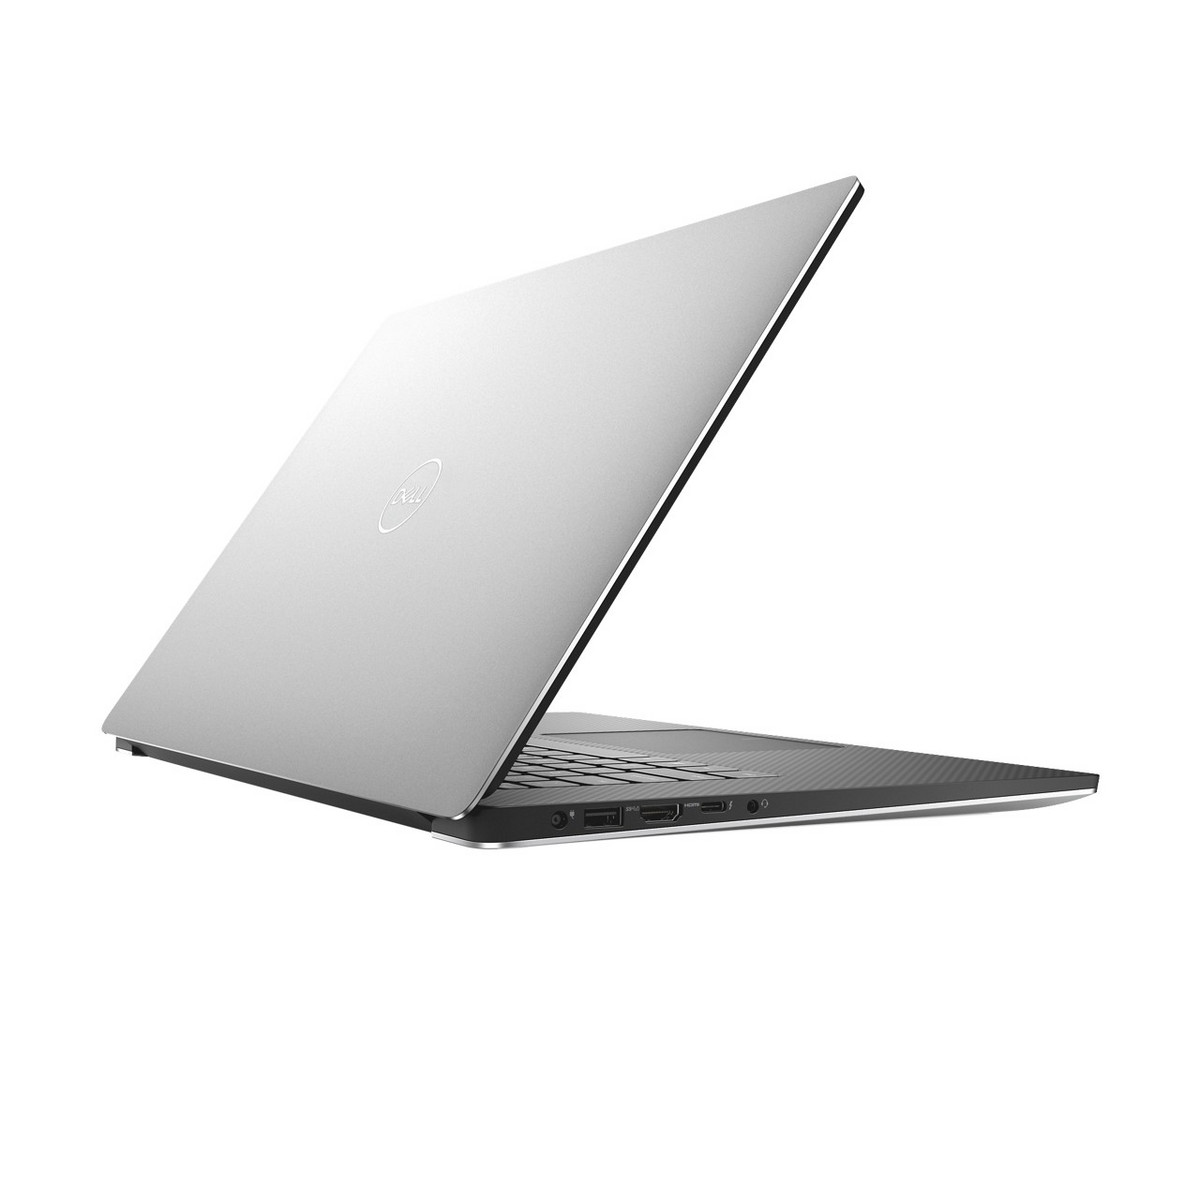 Dell Precision 5530 business version of the XPS 9570 now official